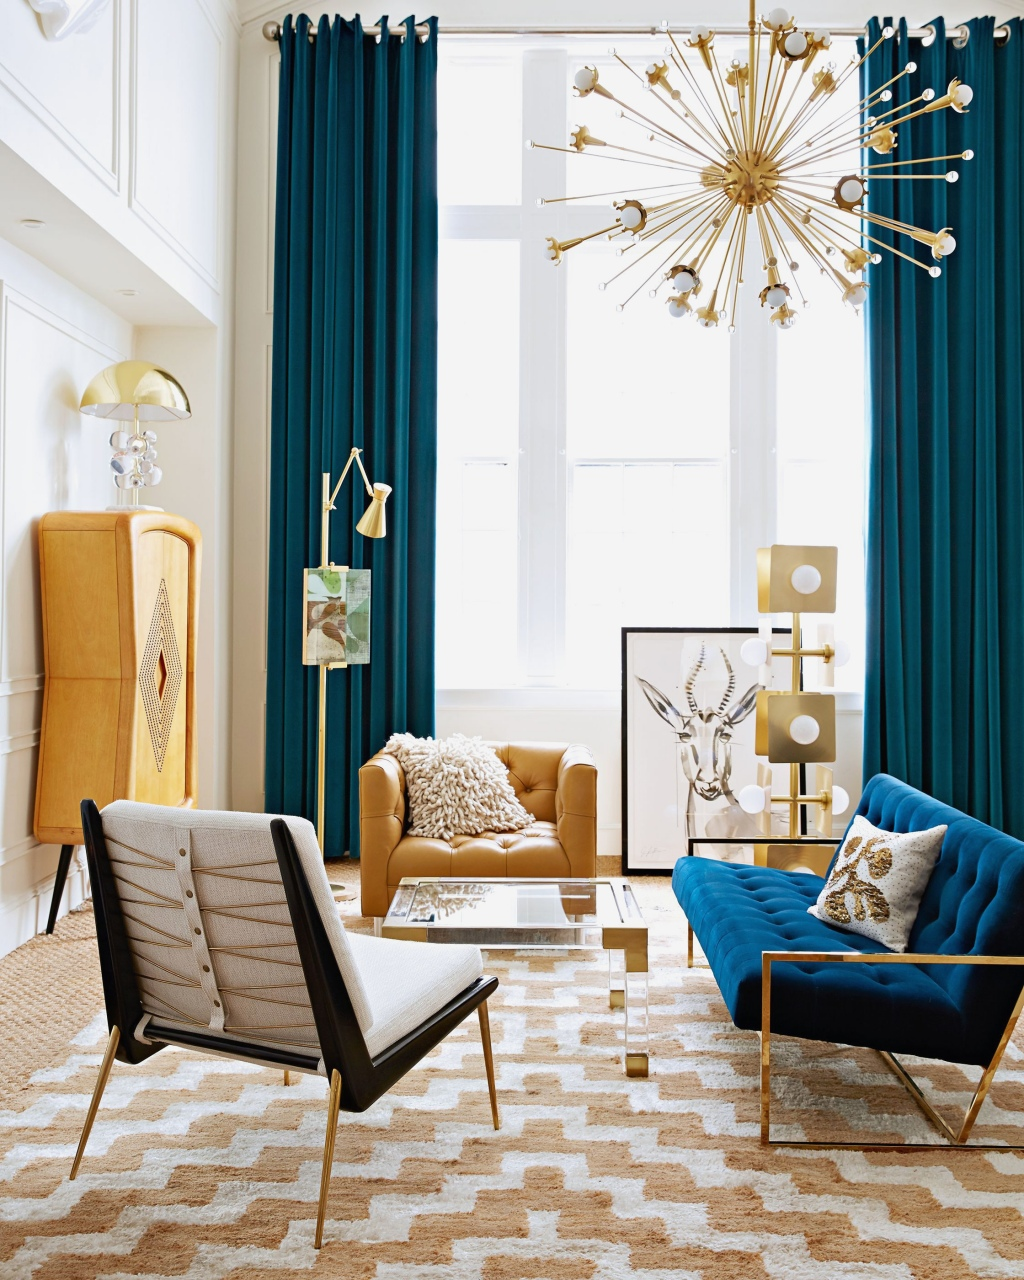 Jonathan Adler New York - View Jonathan Adler Decor Home Decoration Ideas Designing Classy